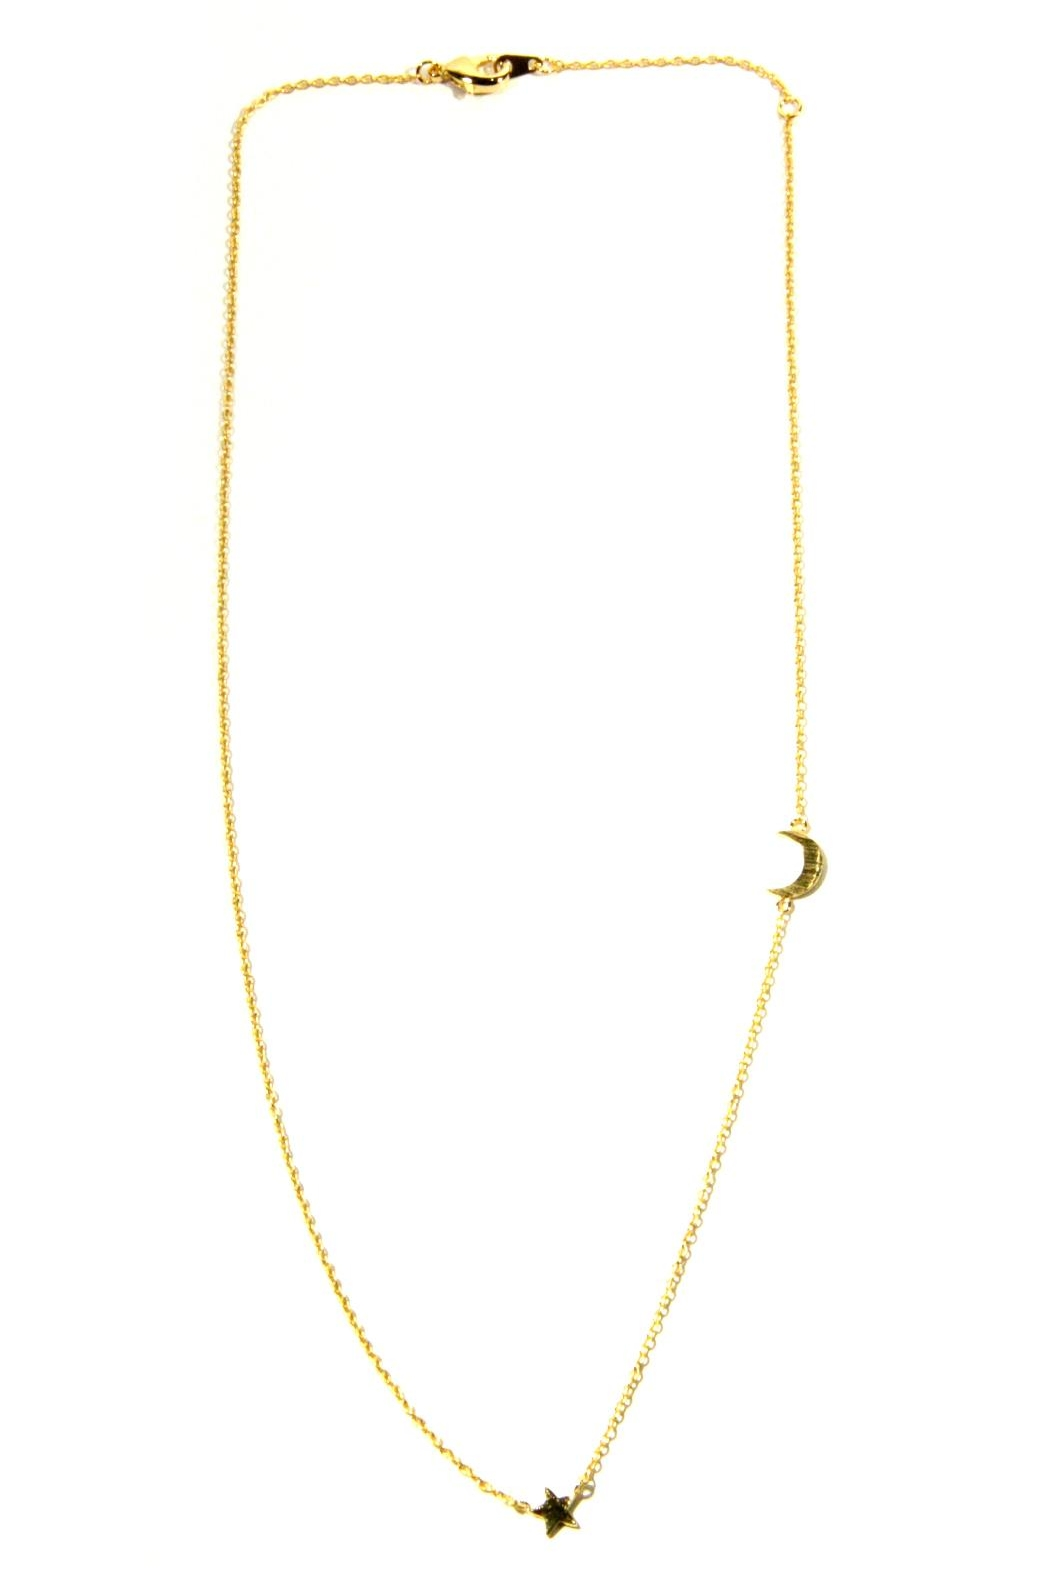 Light Years Collection Gold Celestial Necklace - Main Image